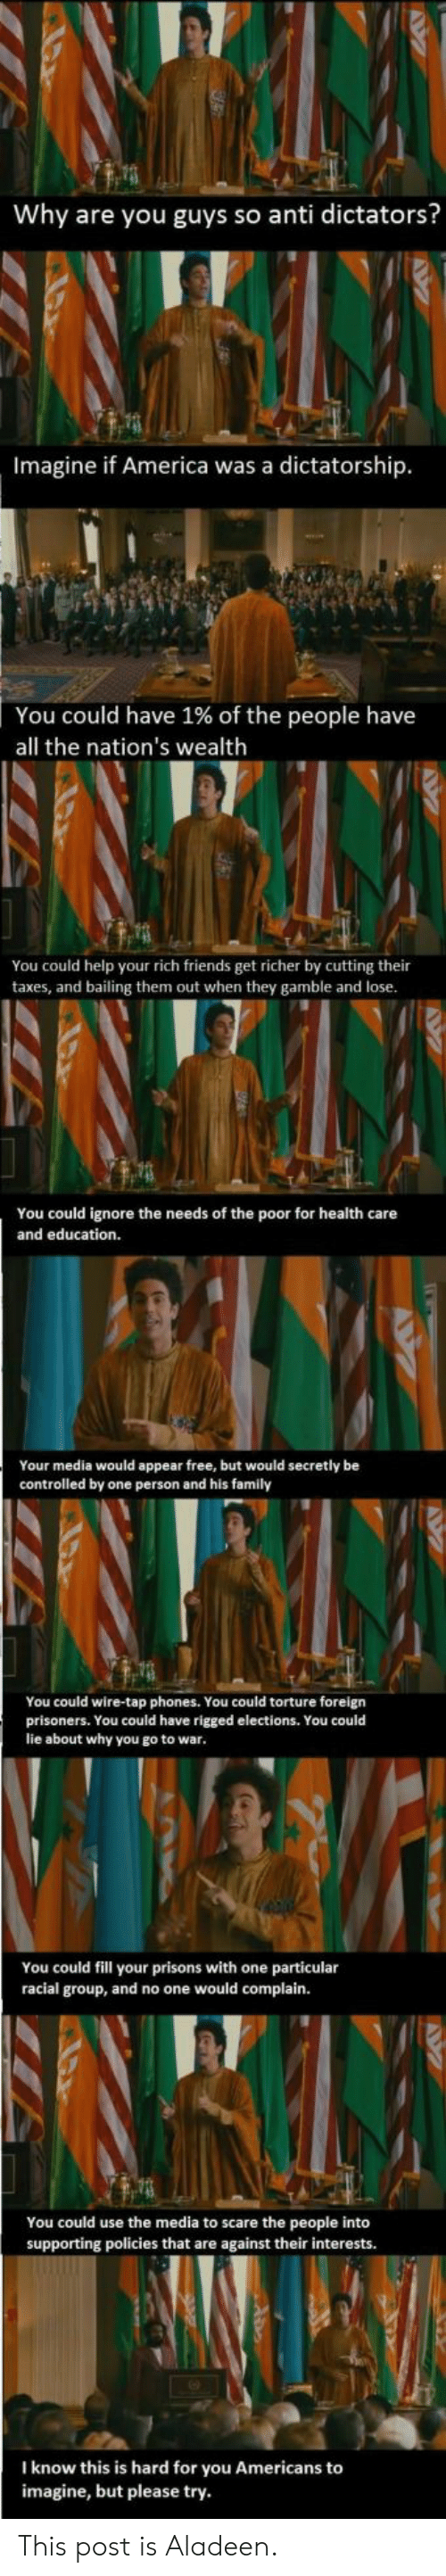 America, Family, and Friends: Why are you guys so anti dictators?  Imagine if America was a dictatorship  You could have 1% of the people have  all the nation's wealth  You could help your rich friends get richer by cutting their  taxes, and bailing them out when they gamble and lose  You could ignore the needs of the poor for health care  and education.  Your media would appear free, but would secretly be  controlled by one person and his family  You could wire-tap phones. You could torture foreign  prisoners. You could have rigged elections. You could  lie about why you go to war  You could fill your prisons with one particular  racial group, and no one would complain.  You could use the media to scare the people into  supporting policies that are against their interests.  I know this is hard for you Americans to  imagine, but please try This post is Aladeen.